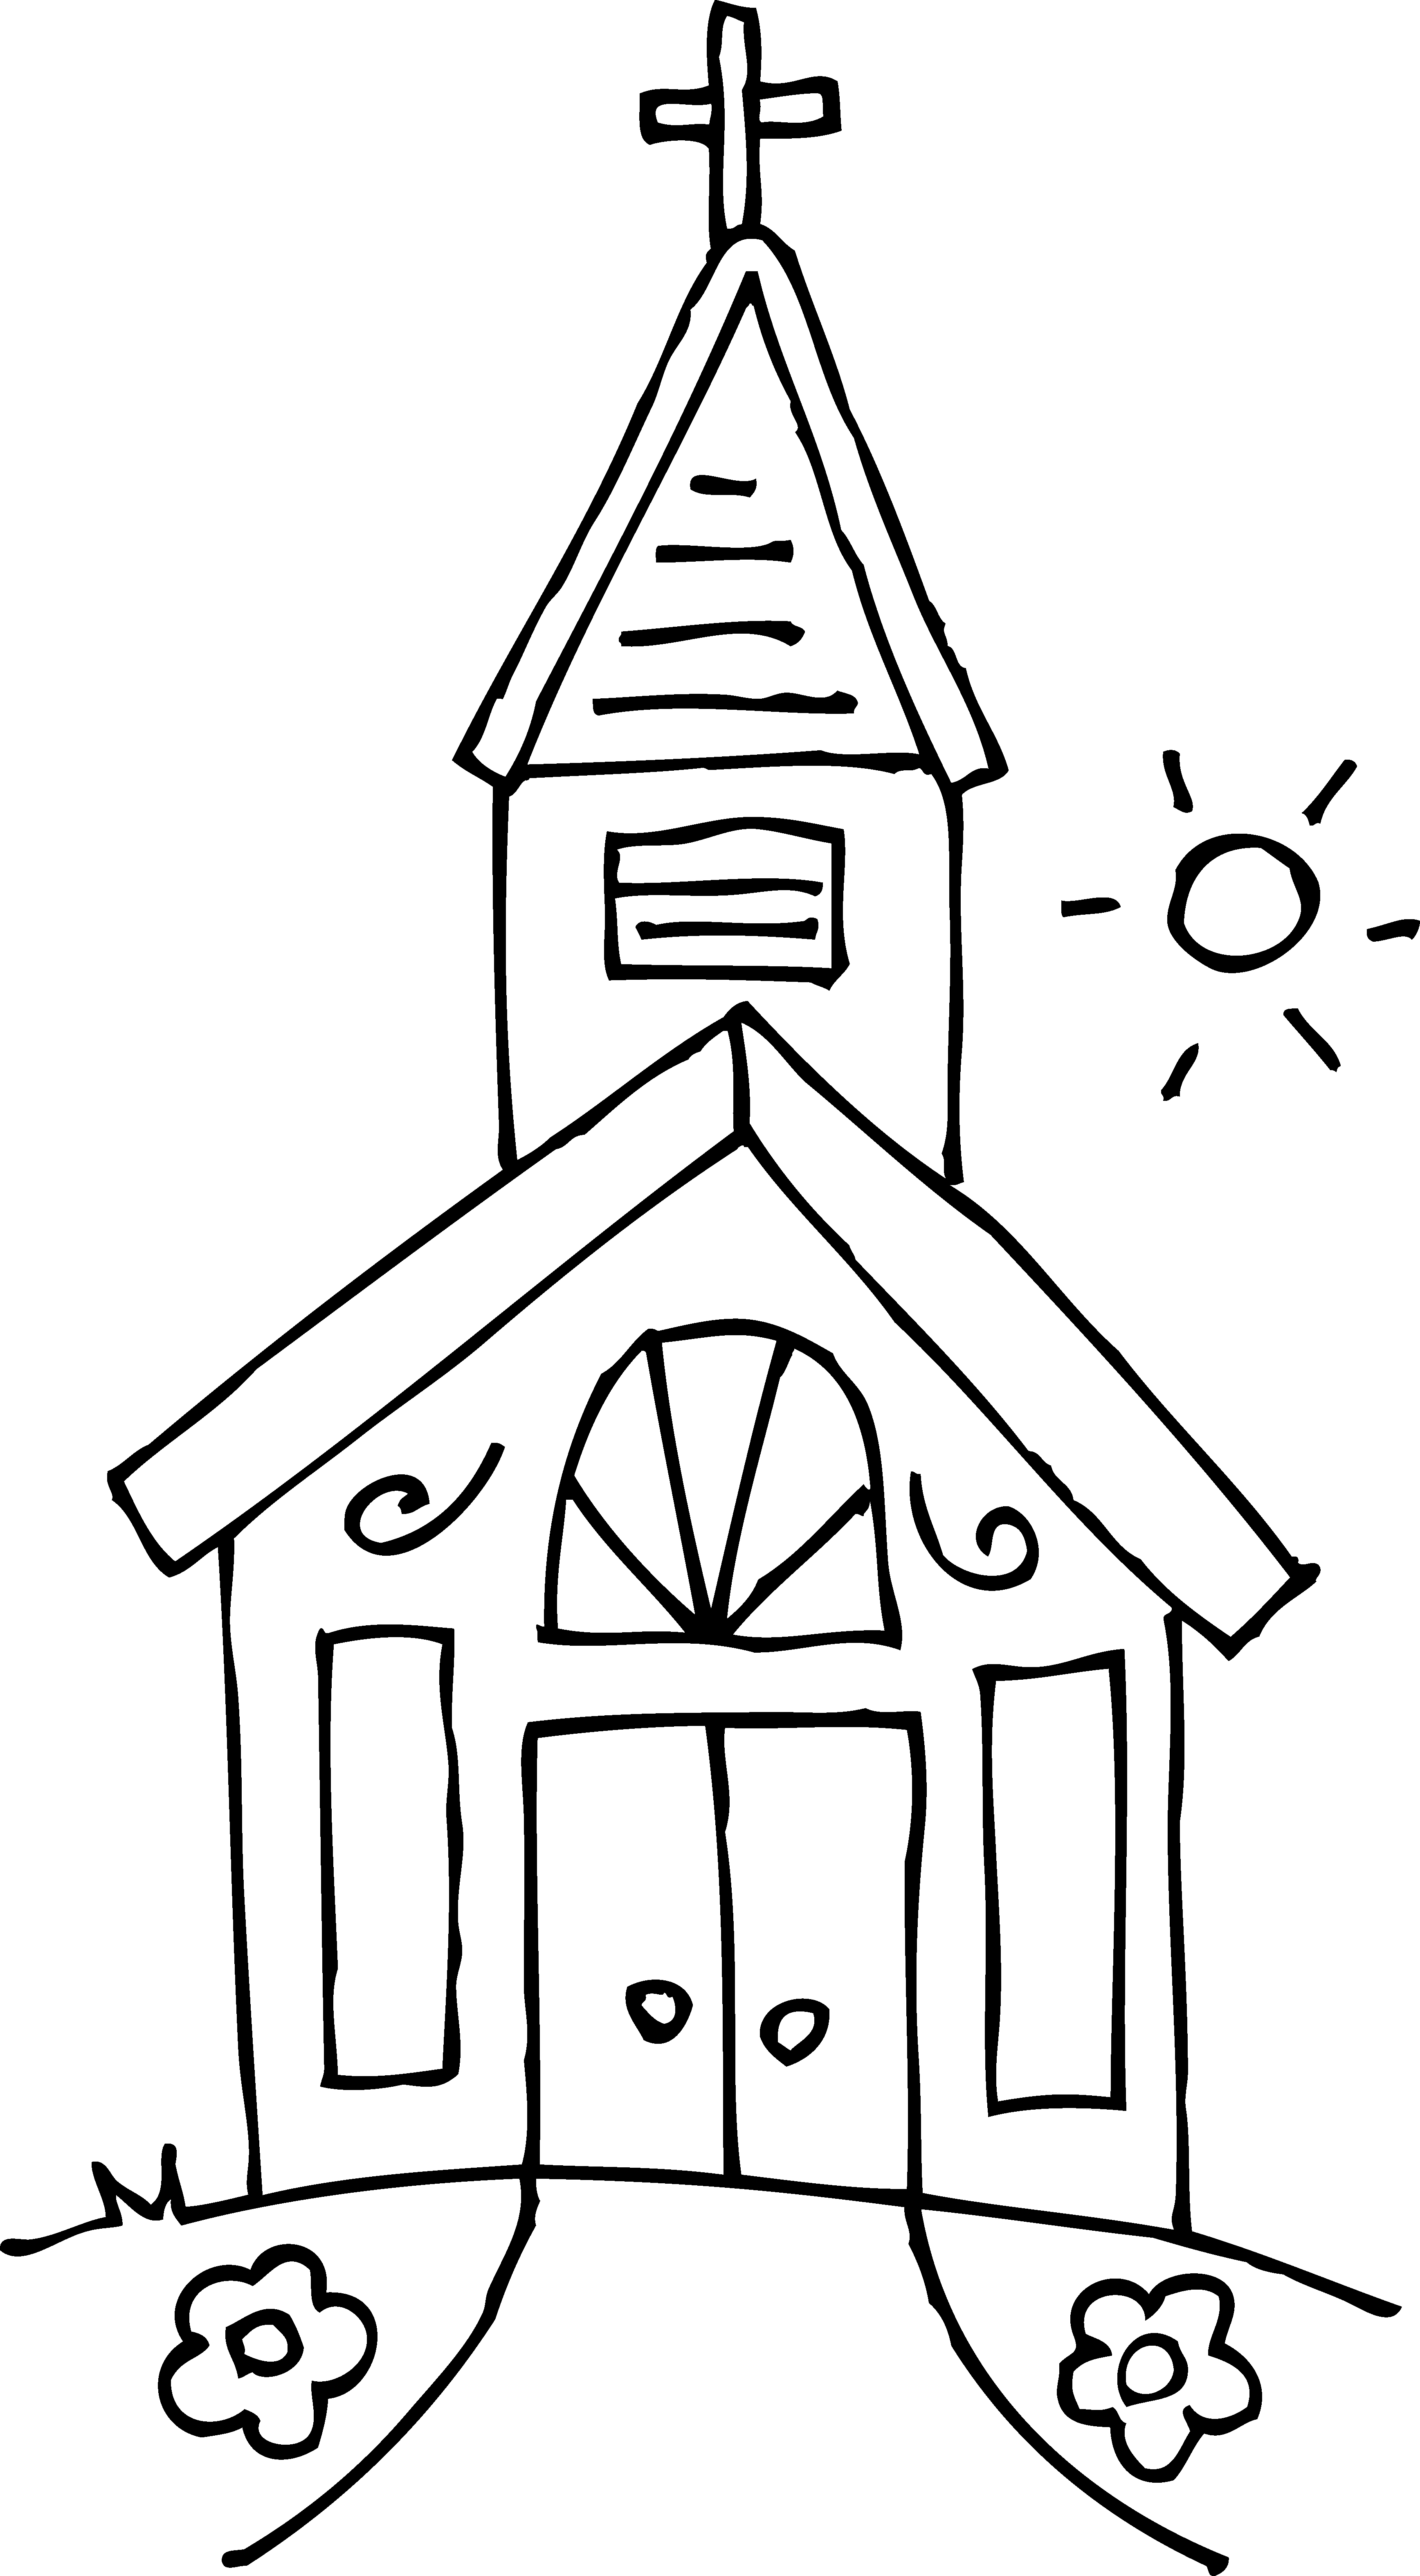 3472x6297 Unique Church Coloring Page Collection Printable Coloring Sheet